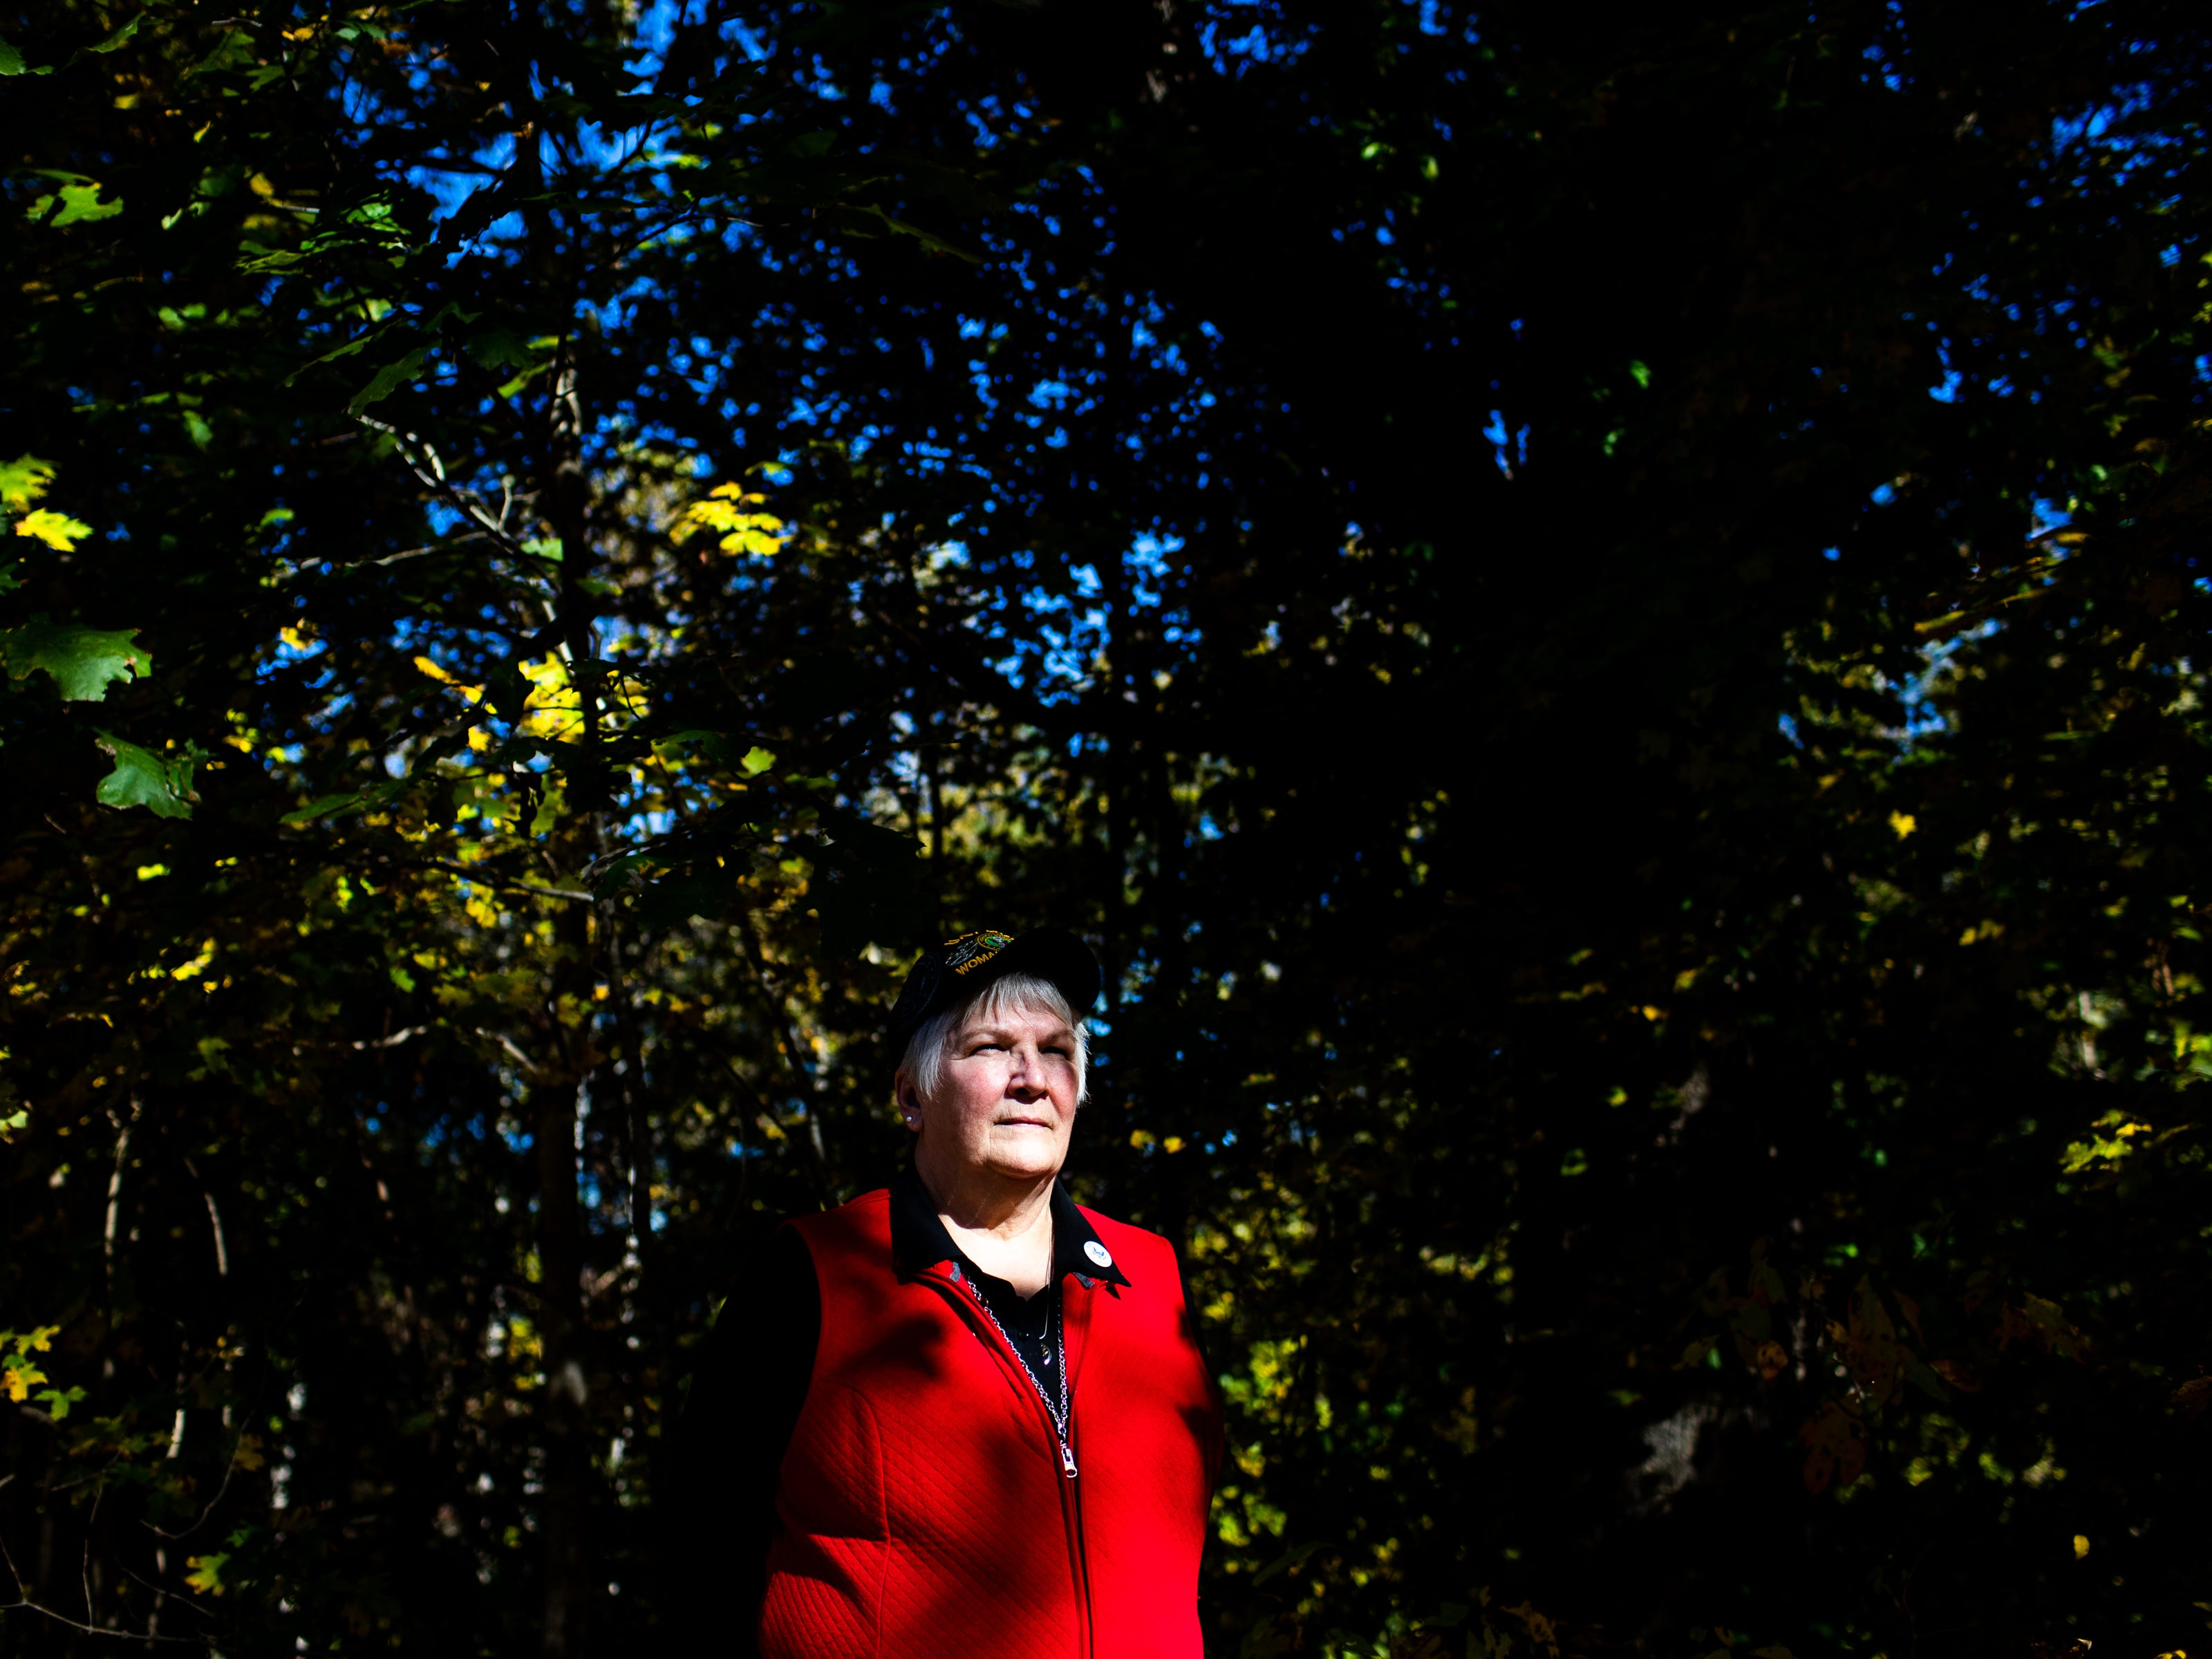 Gulf War veteran Mary Ross stands near the trees at her home Monday, Oct. 29, 2018, in Clarksville, Tenn. Today, Ross isn't always seen as the stereotypical veteran, but she never stops serving.